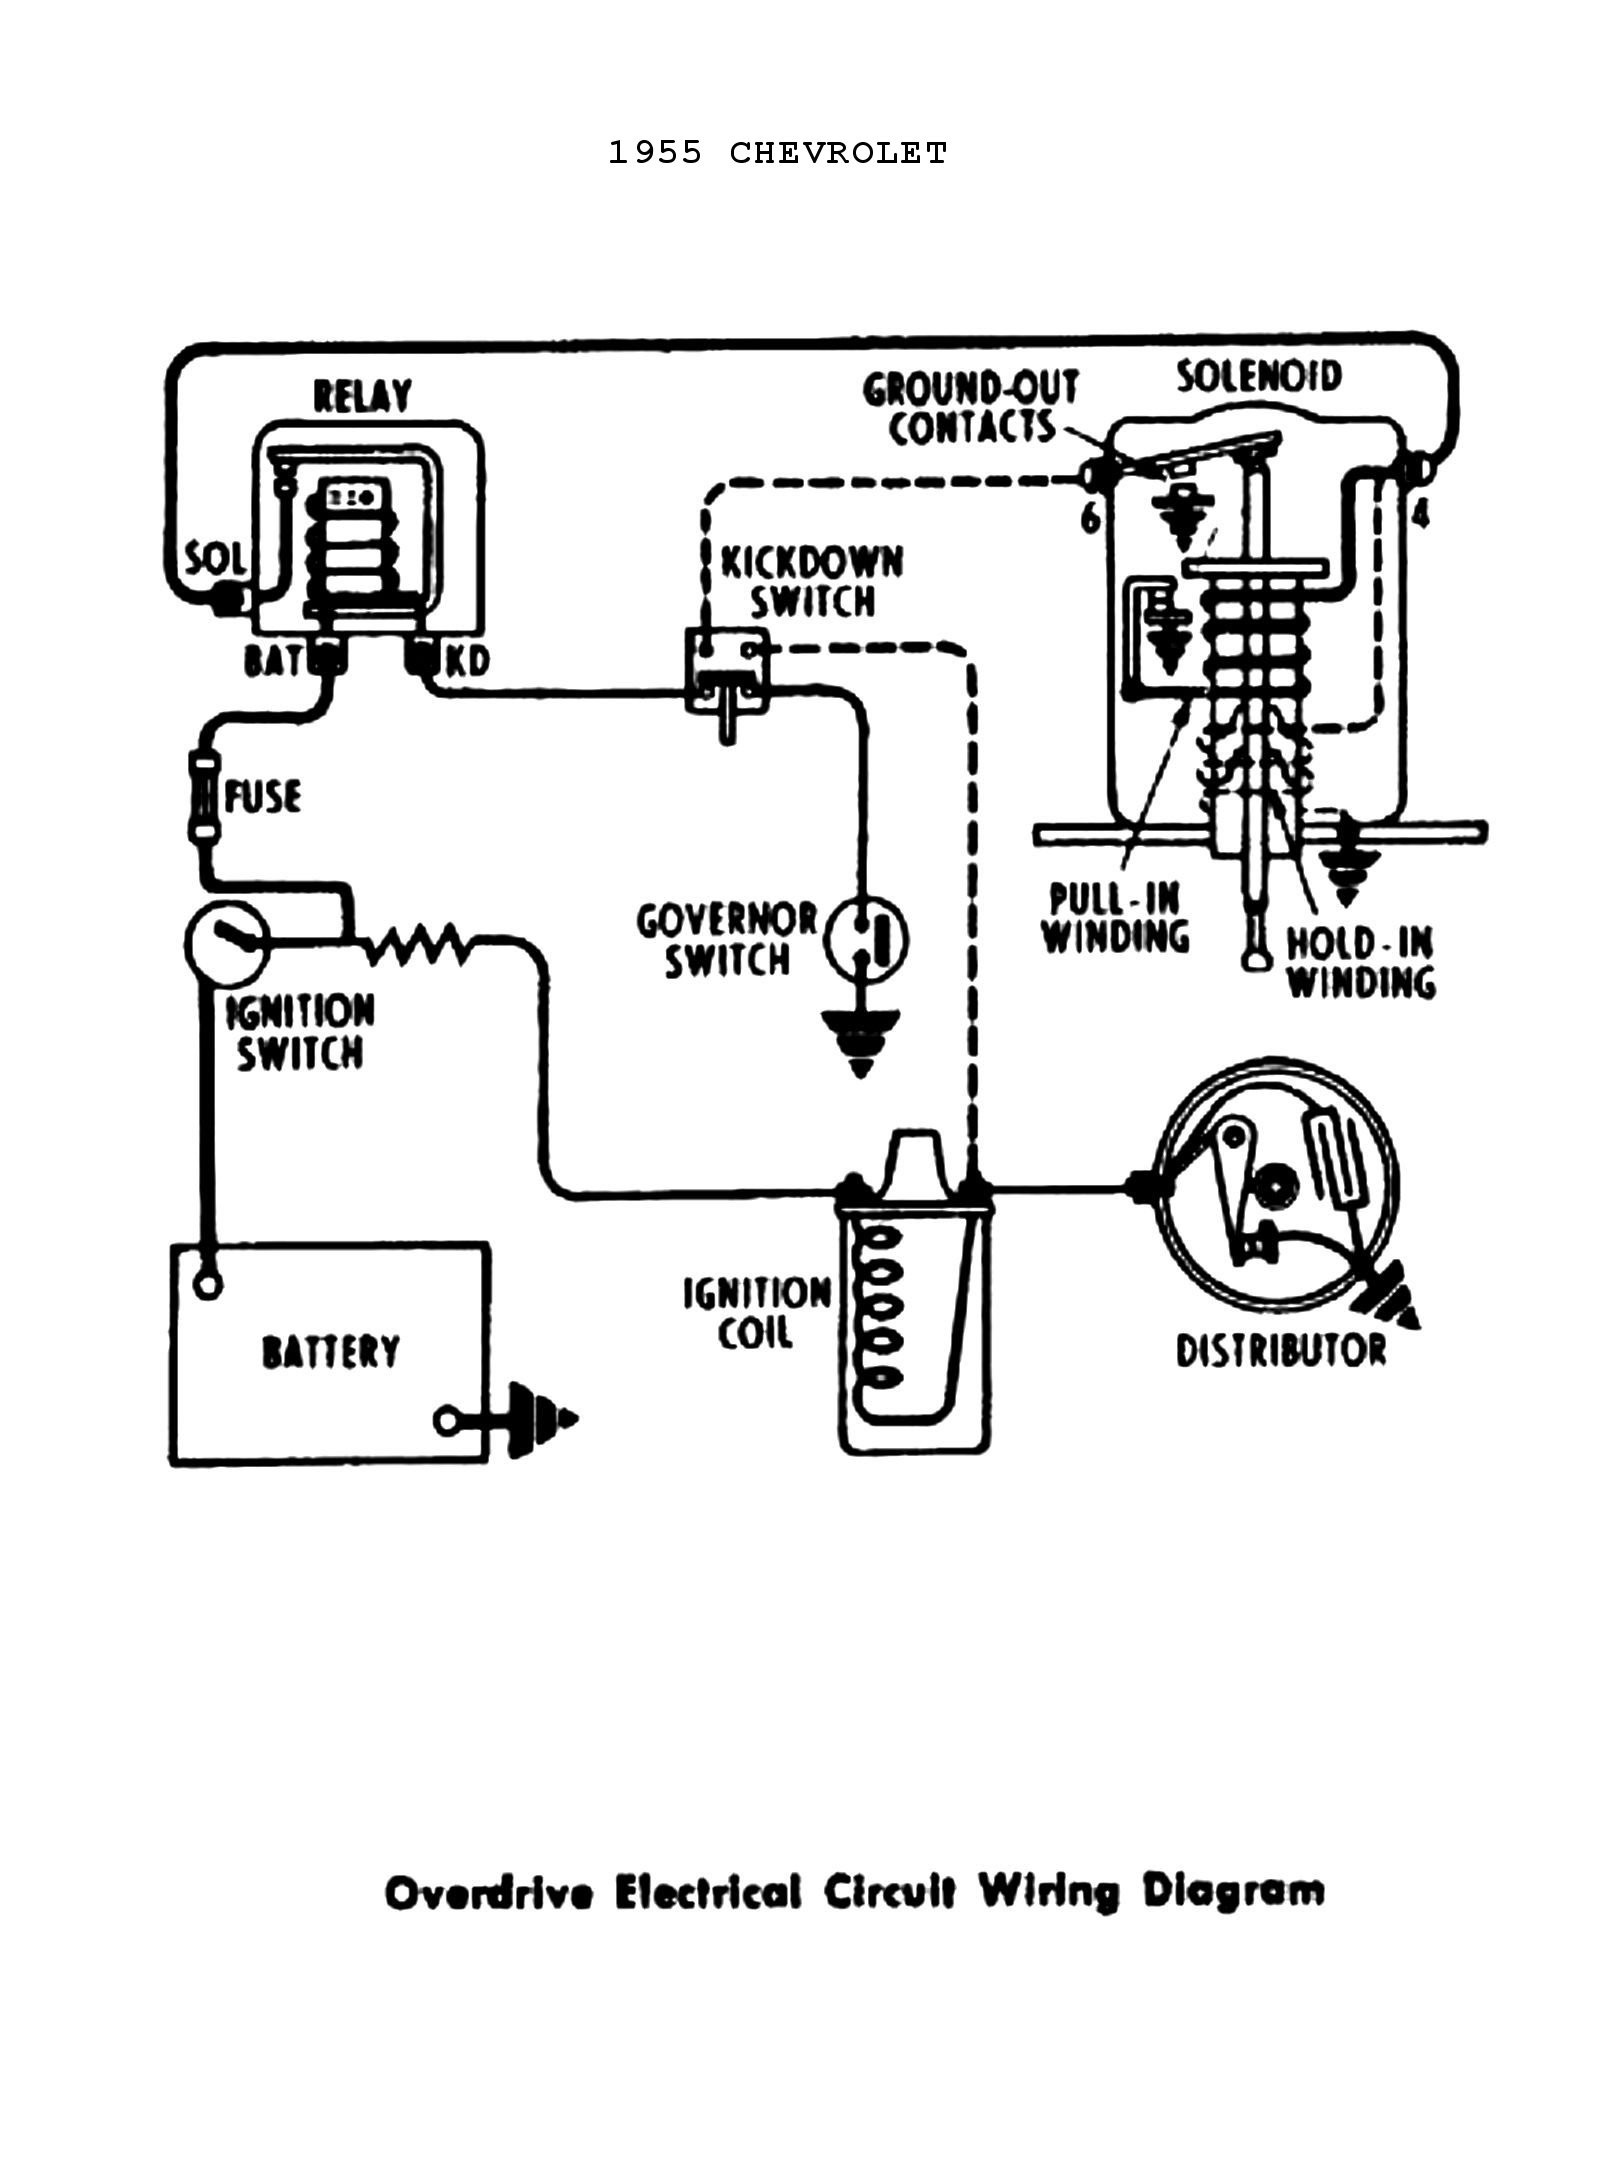 Straight 6 Engine Diagram Chevy Wiring Diagrams Of Straight 6 Engine Diagram